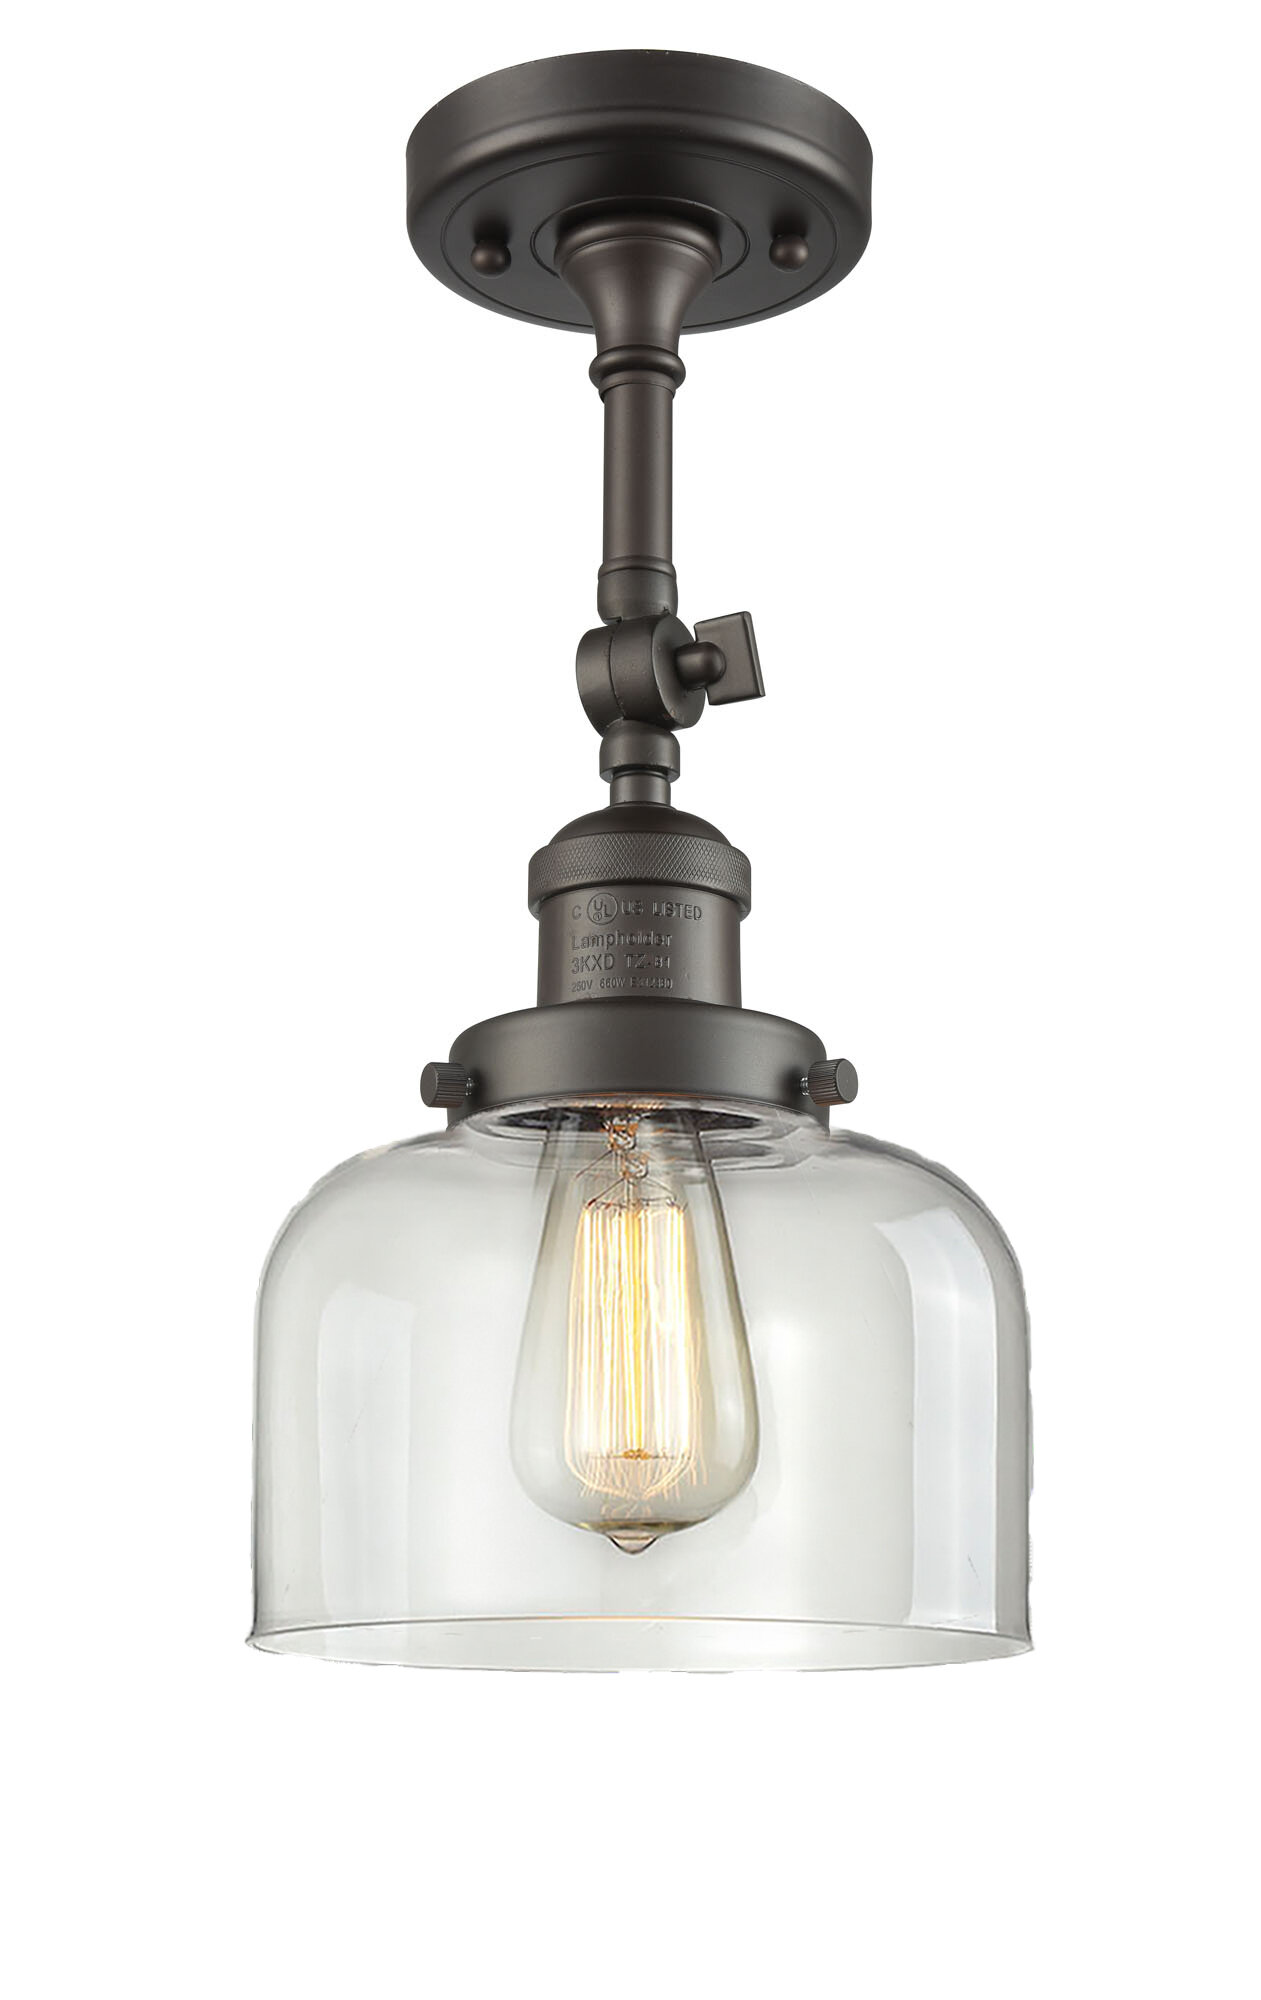 Breakwater bay wynkoop bell glass 1 light semi flush mount reviews wayfair